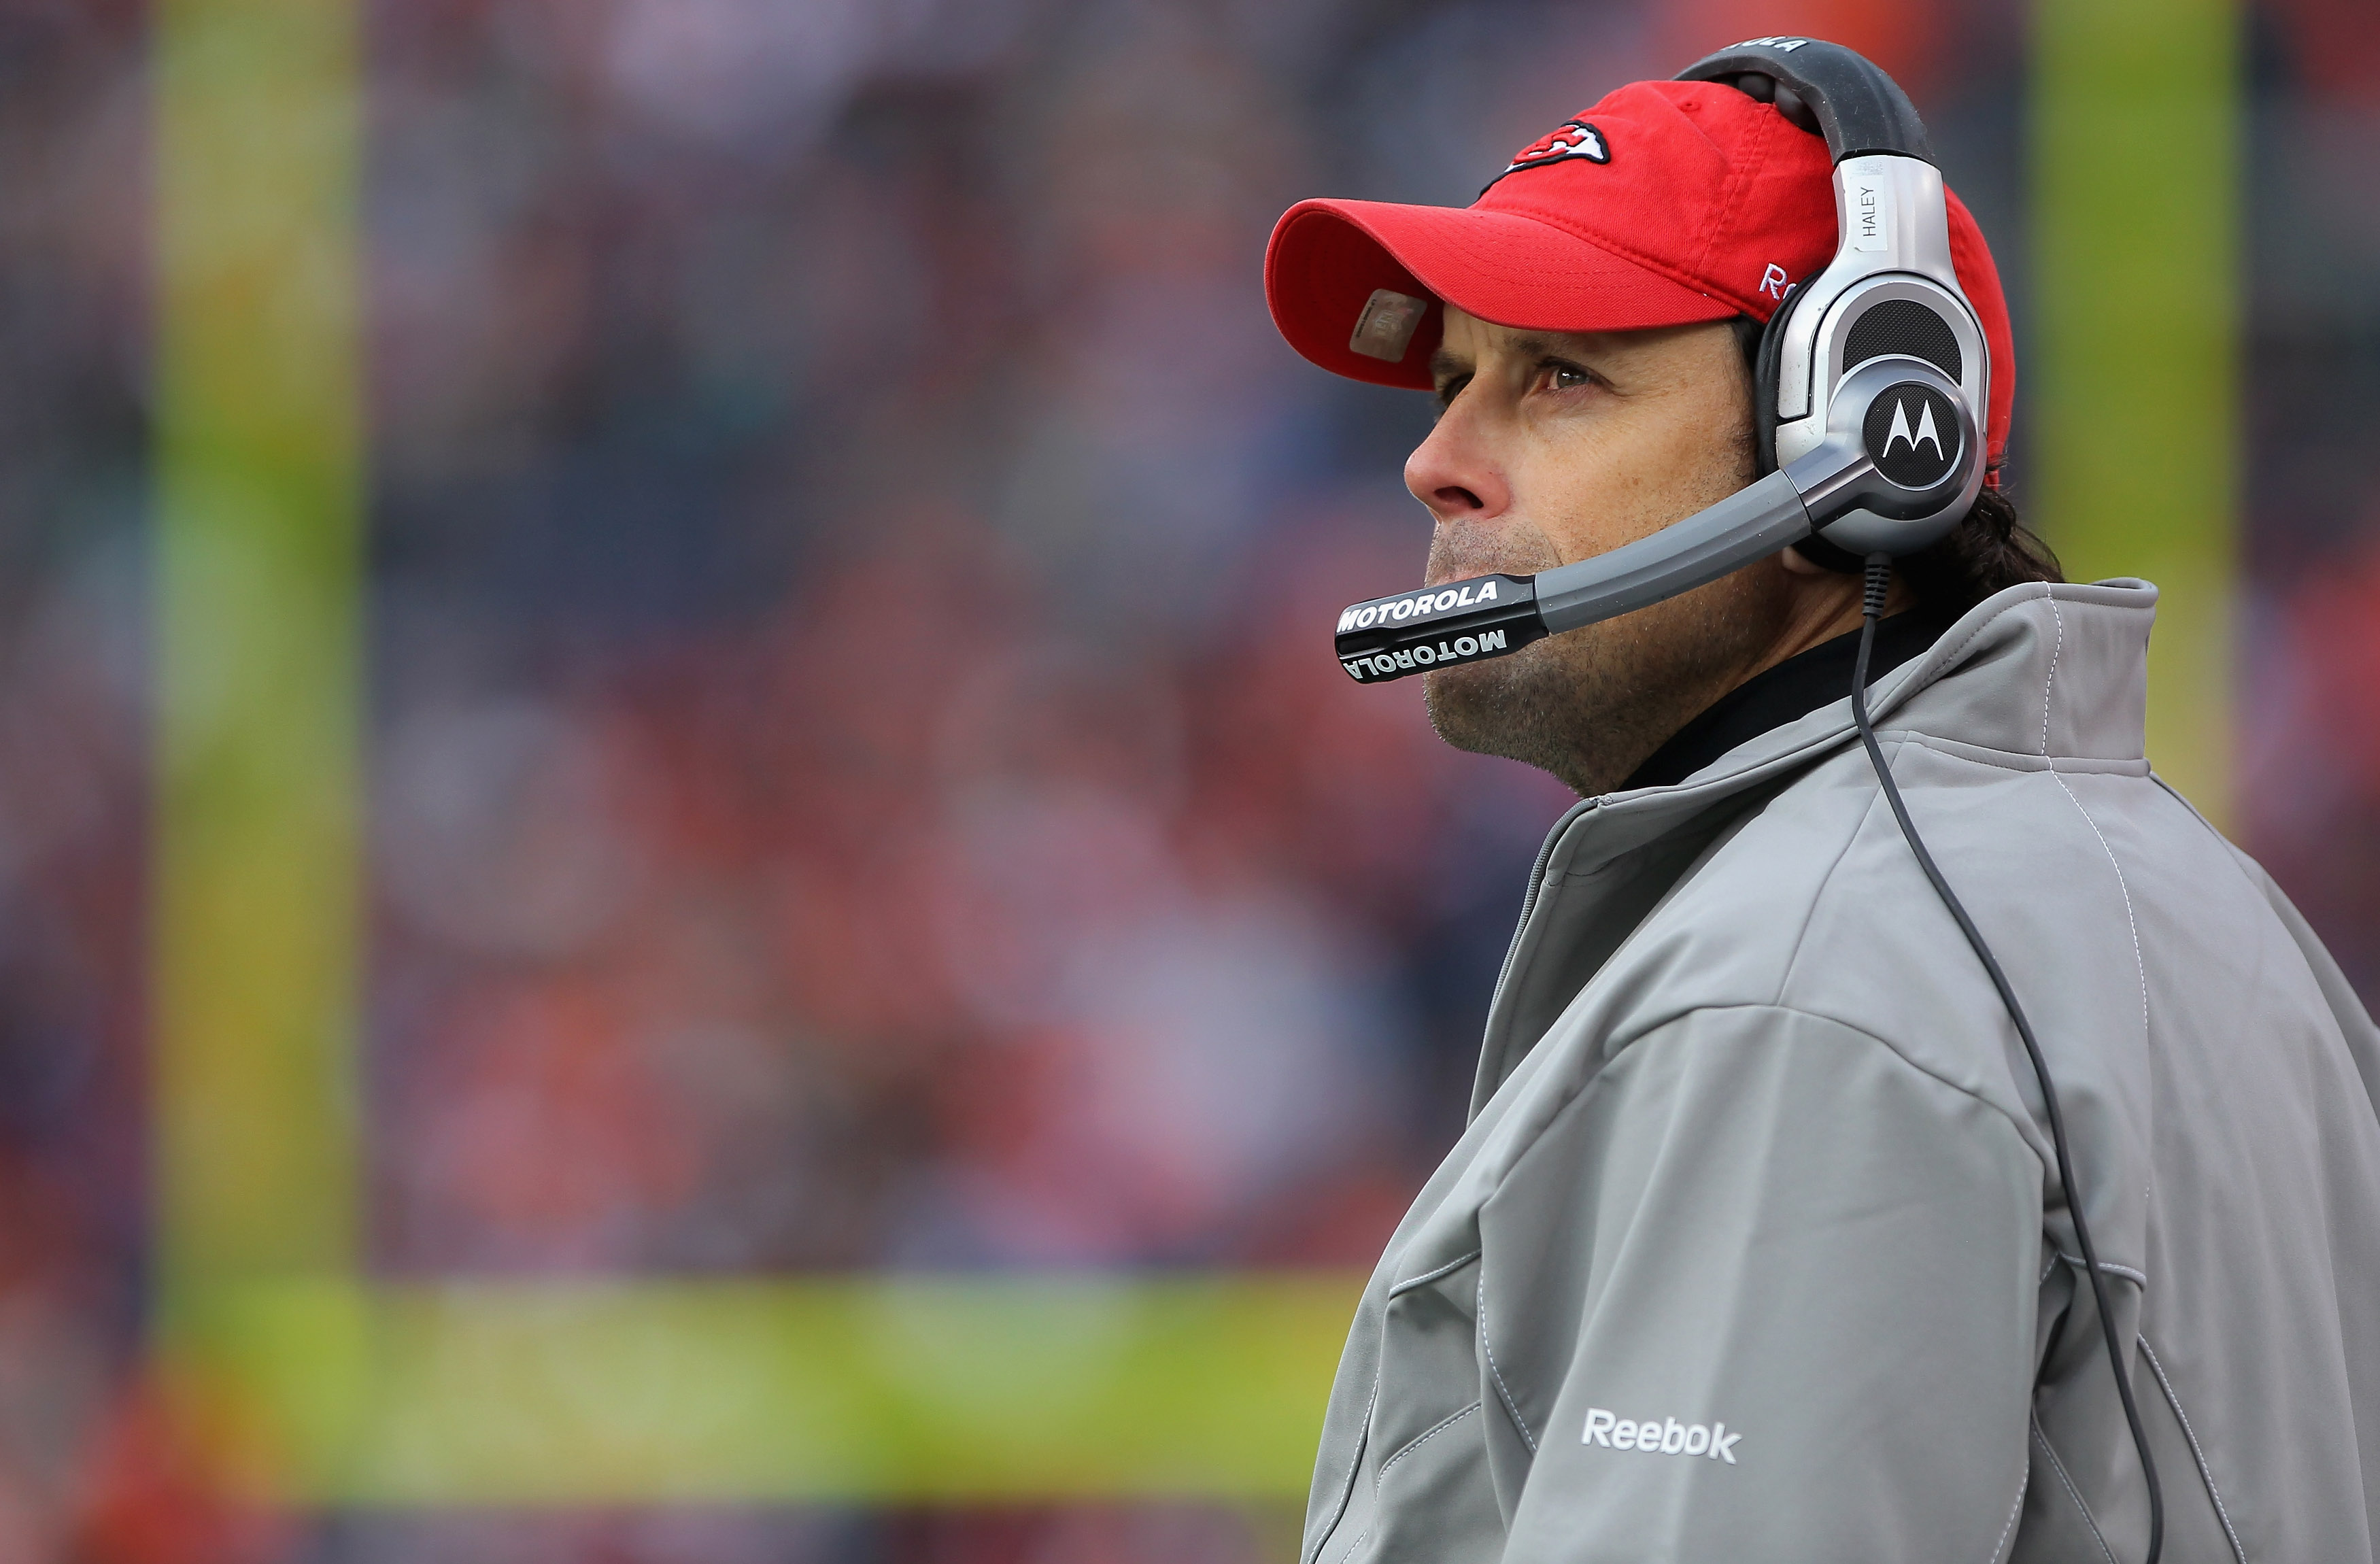 DENVER - NOVEMBER 14:  Head coach Todd Haley of the Kansas City Chiefs leads his team against the Denver Broncos at INVESCO Field at Mile High on November 14, 2010 in Denver, Colorado. The Broncos defeated the Chiefs 49-29.  (Photo by Doug Pensinger/Getty